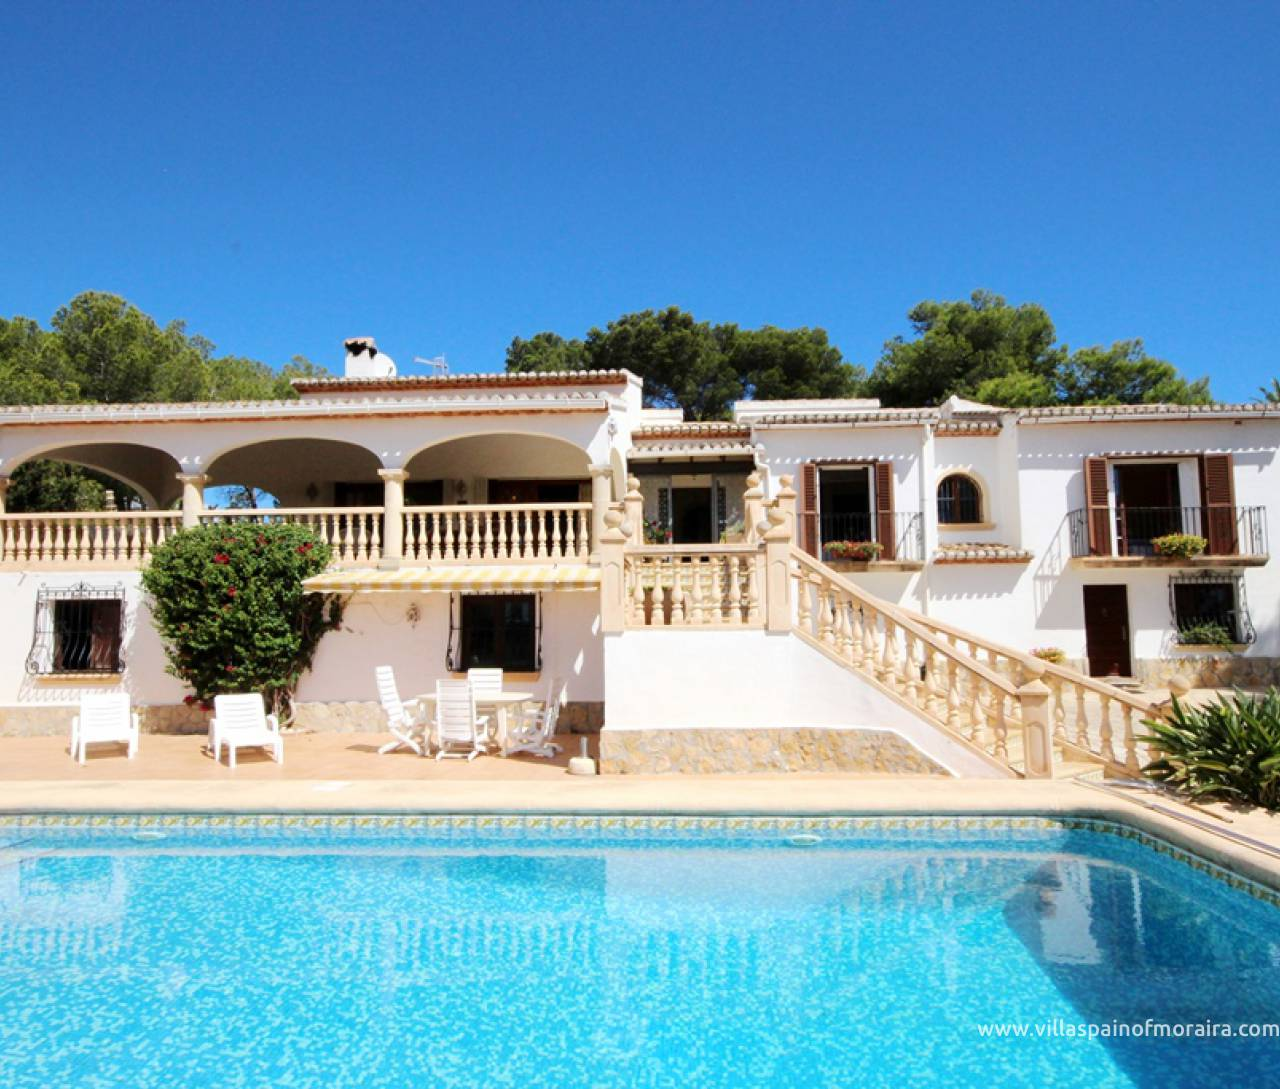 Costa Nova Javea villa for sale